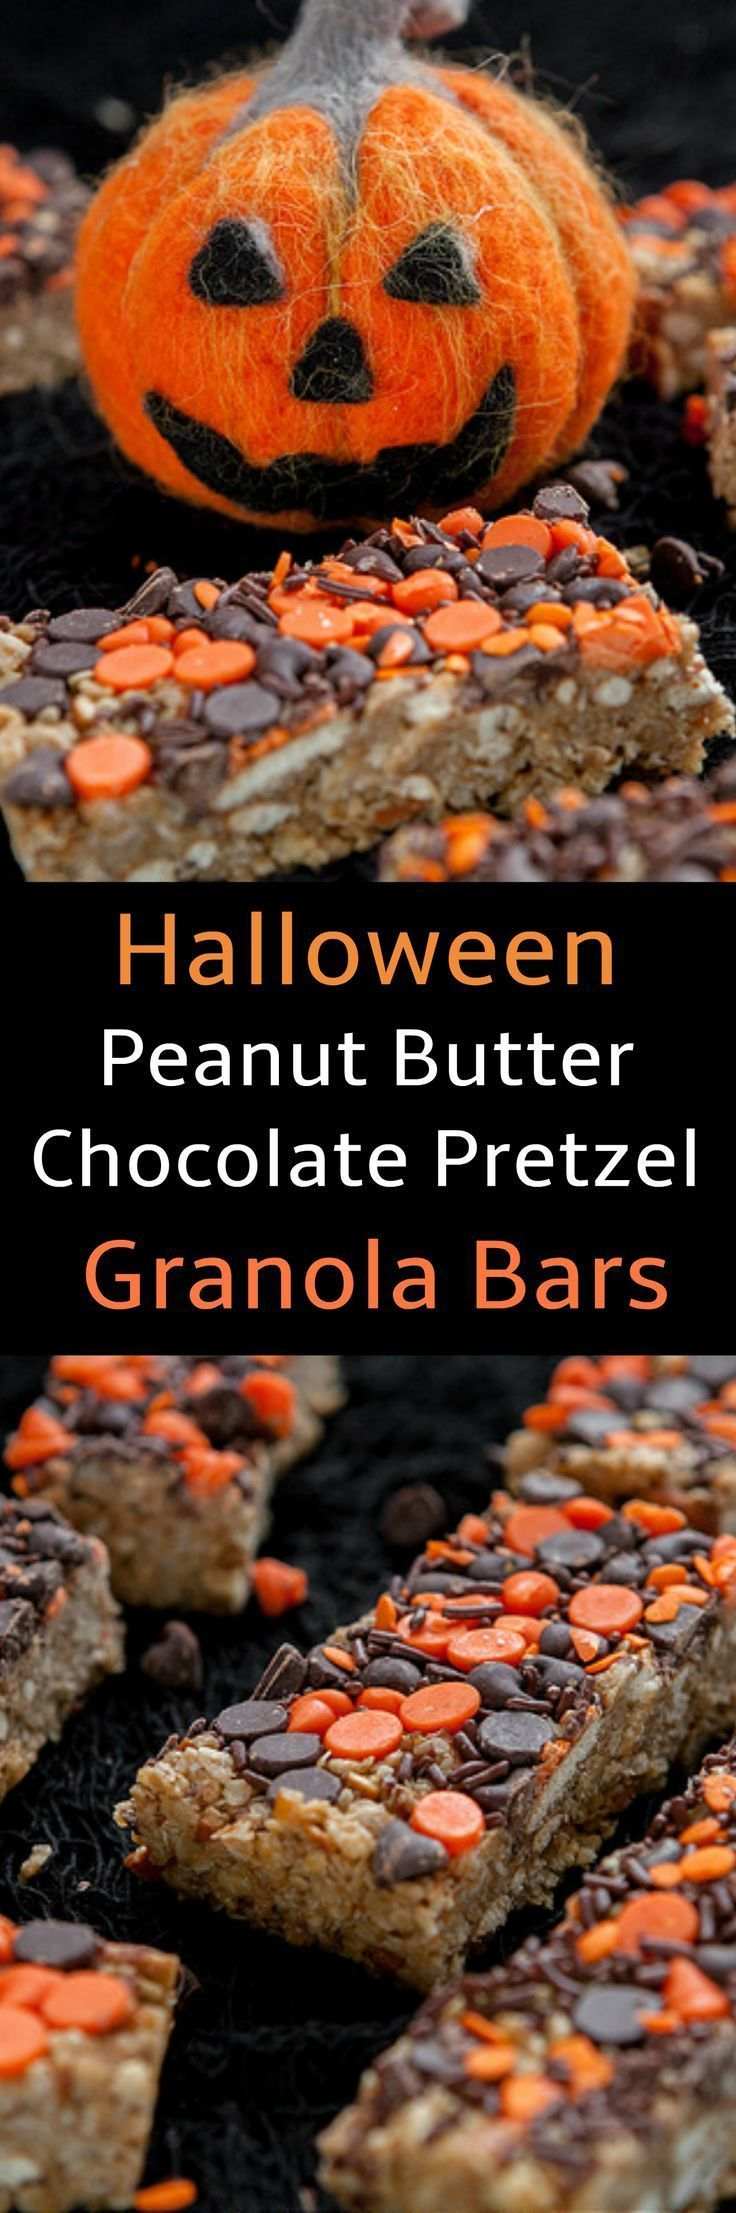 Halloween Peanut Butter Chocolate Chip Granola Bars  Halloween Decorated Peanut Butter Chocolate Chip Pretzel Granola Bars! These are great for snacks breakfast and Halloween parties! Use black and orange chocolate chip morsels to make them festive looking!  Source by itsyummi #halloweenbreakfastforkids Halloween Peanut Butter Chocolate Chip Granola Bars  Halloween Decorated Peanut Butter Chocolate Chip Pretzel Granola Bars! These are great for snacks breakfast and Halloween parties! Use black a #halloweenbreakfastforkids